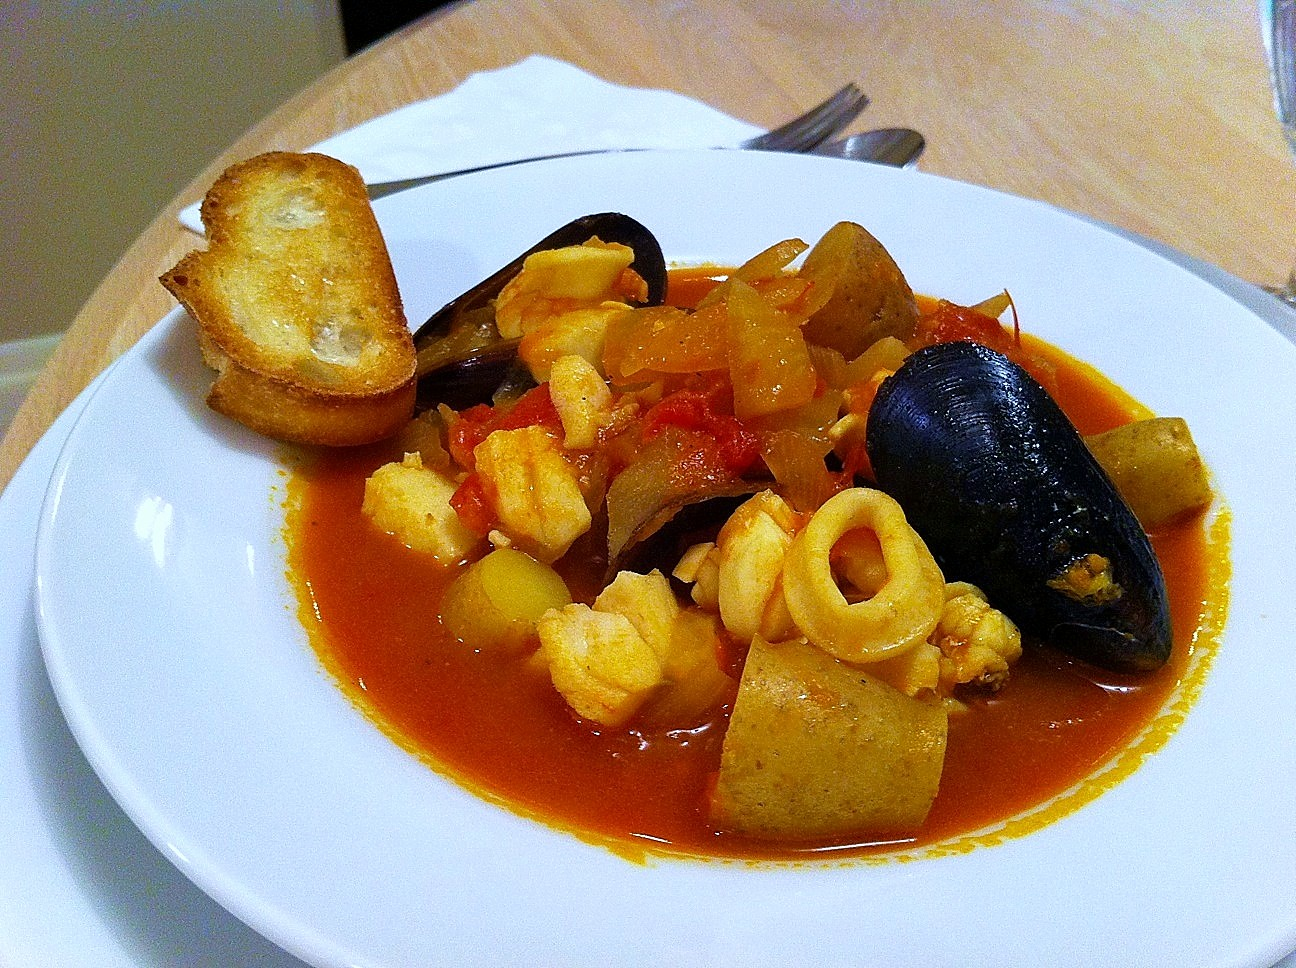 Seafood bouillabaisse recipes 7000 recipes for French fish stew